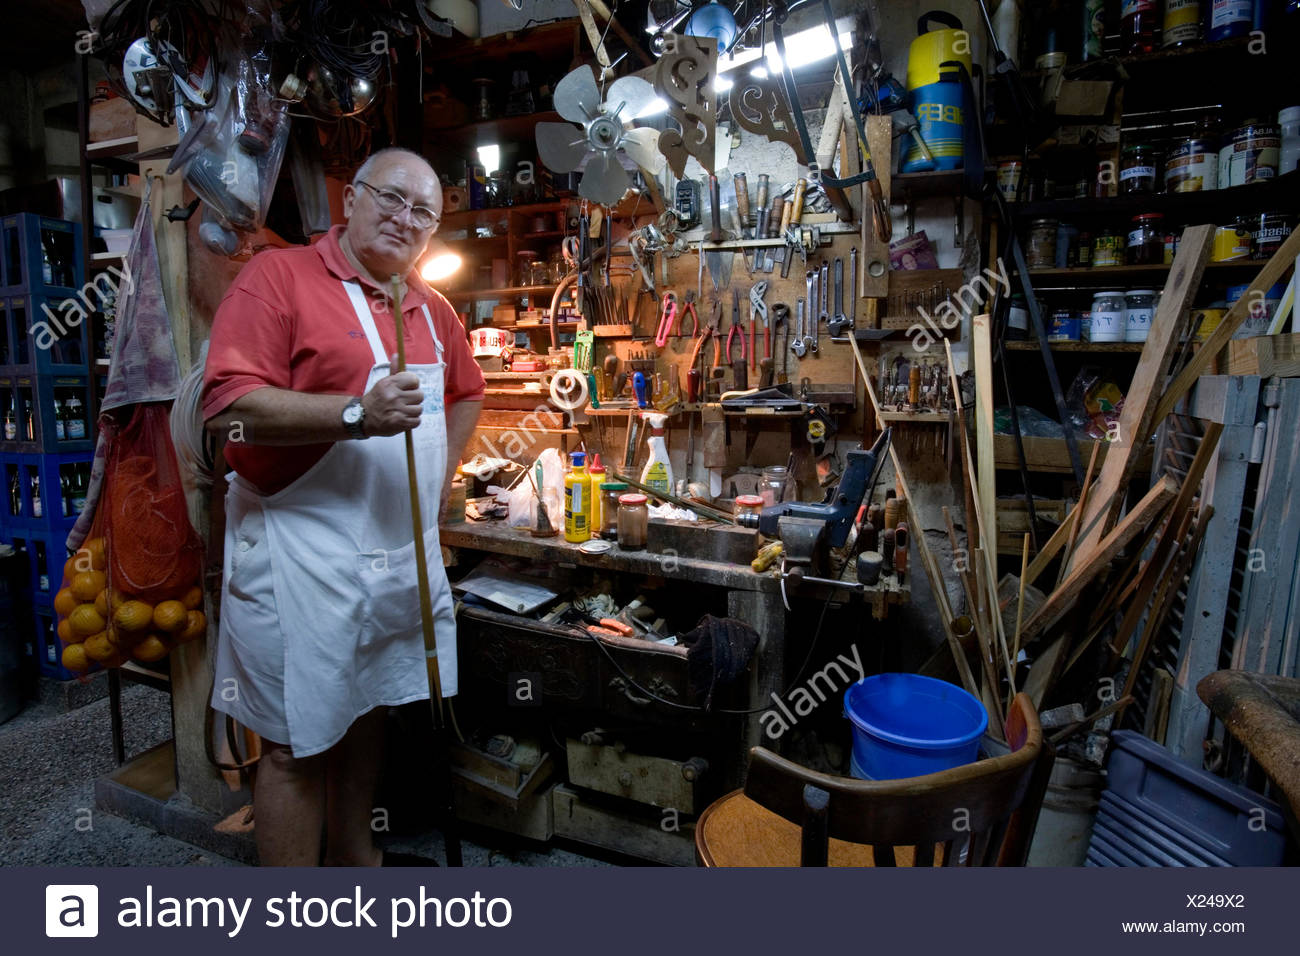 guy in a workshop toolshed with a billiard cue, Argentina - Stock Image